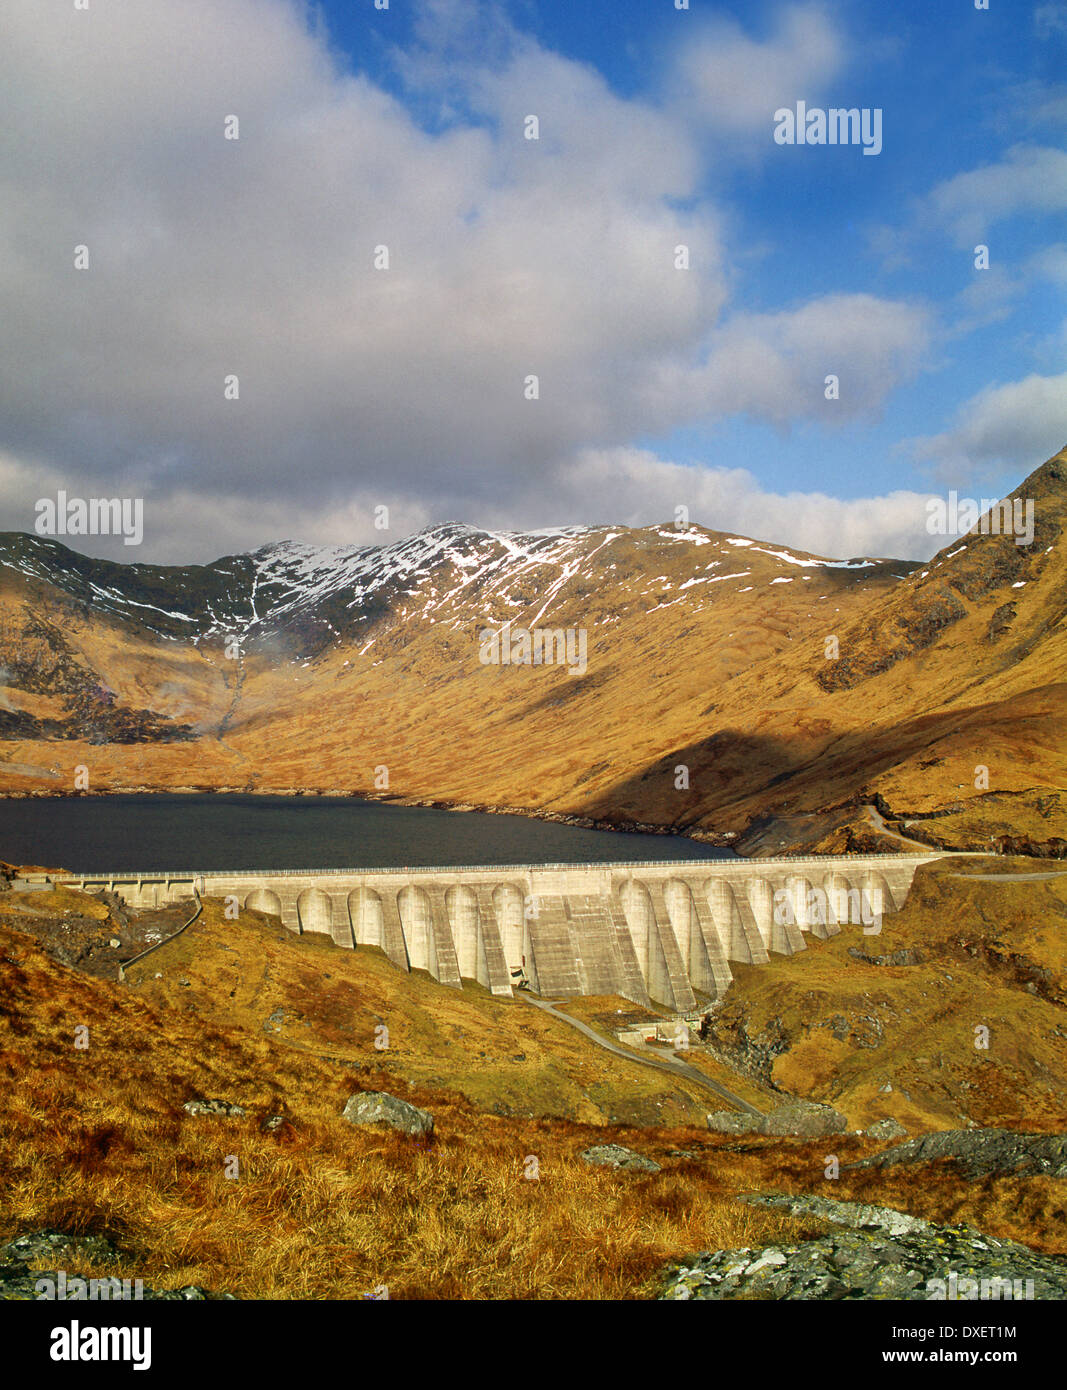 The hydro electric dam situated on Ben Cruachan,Argyllshire. - Stock Image